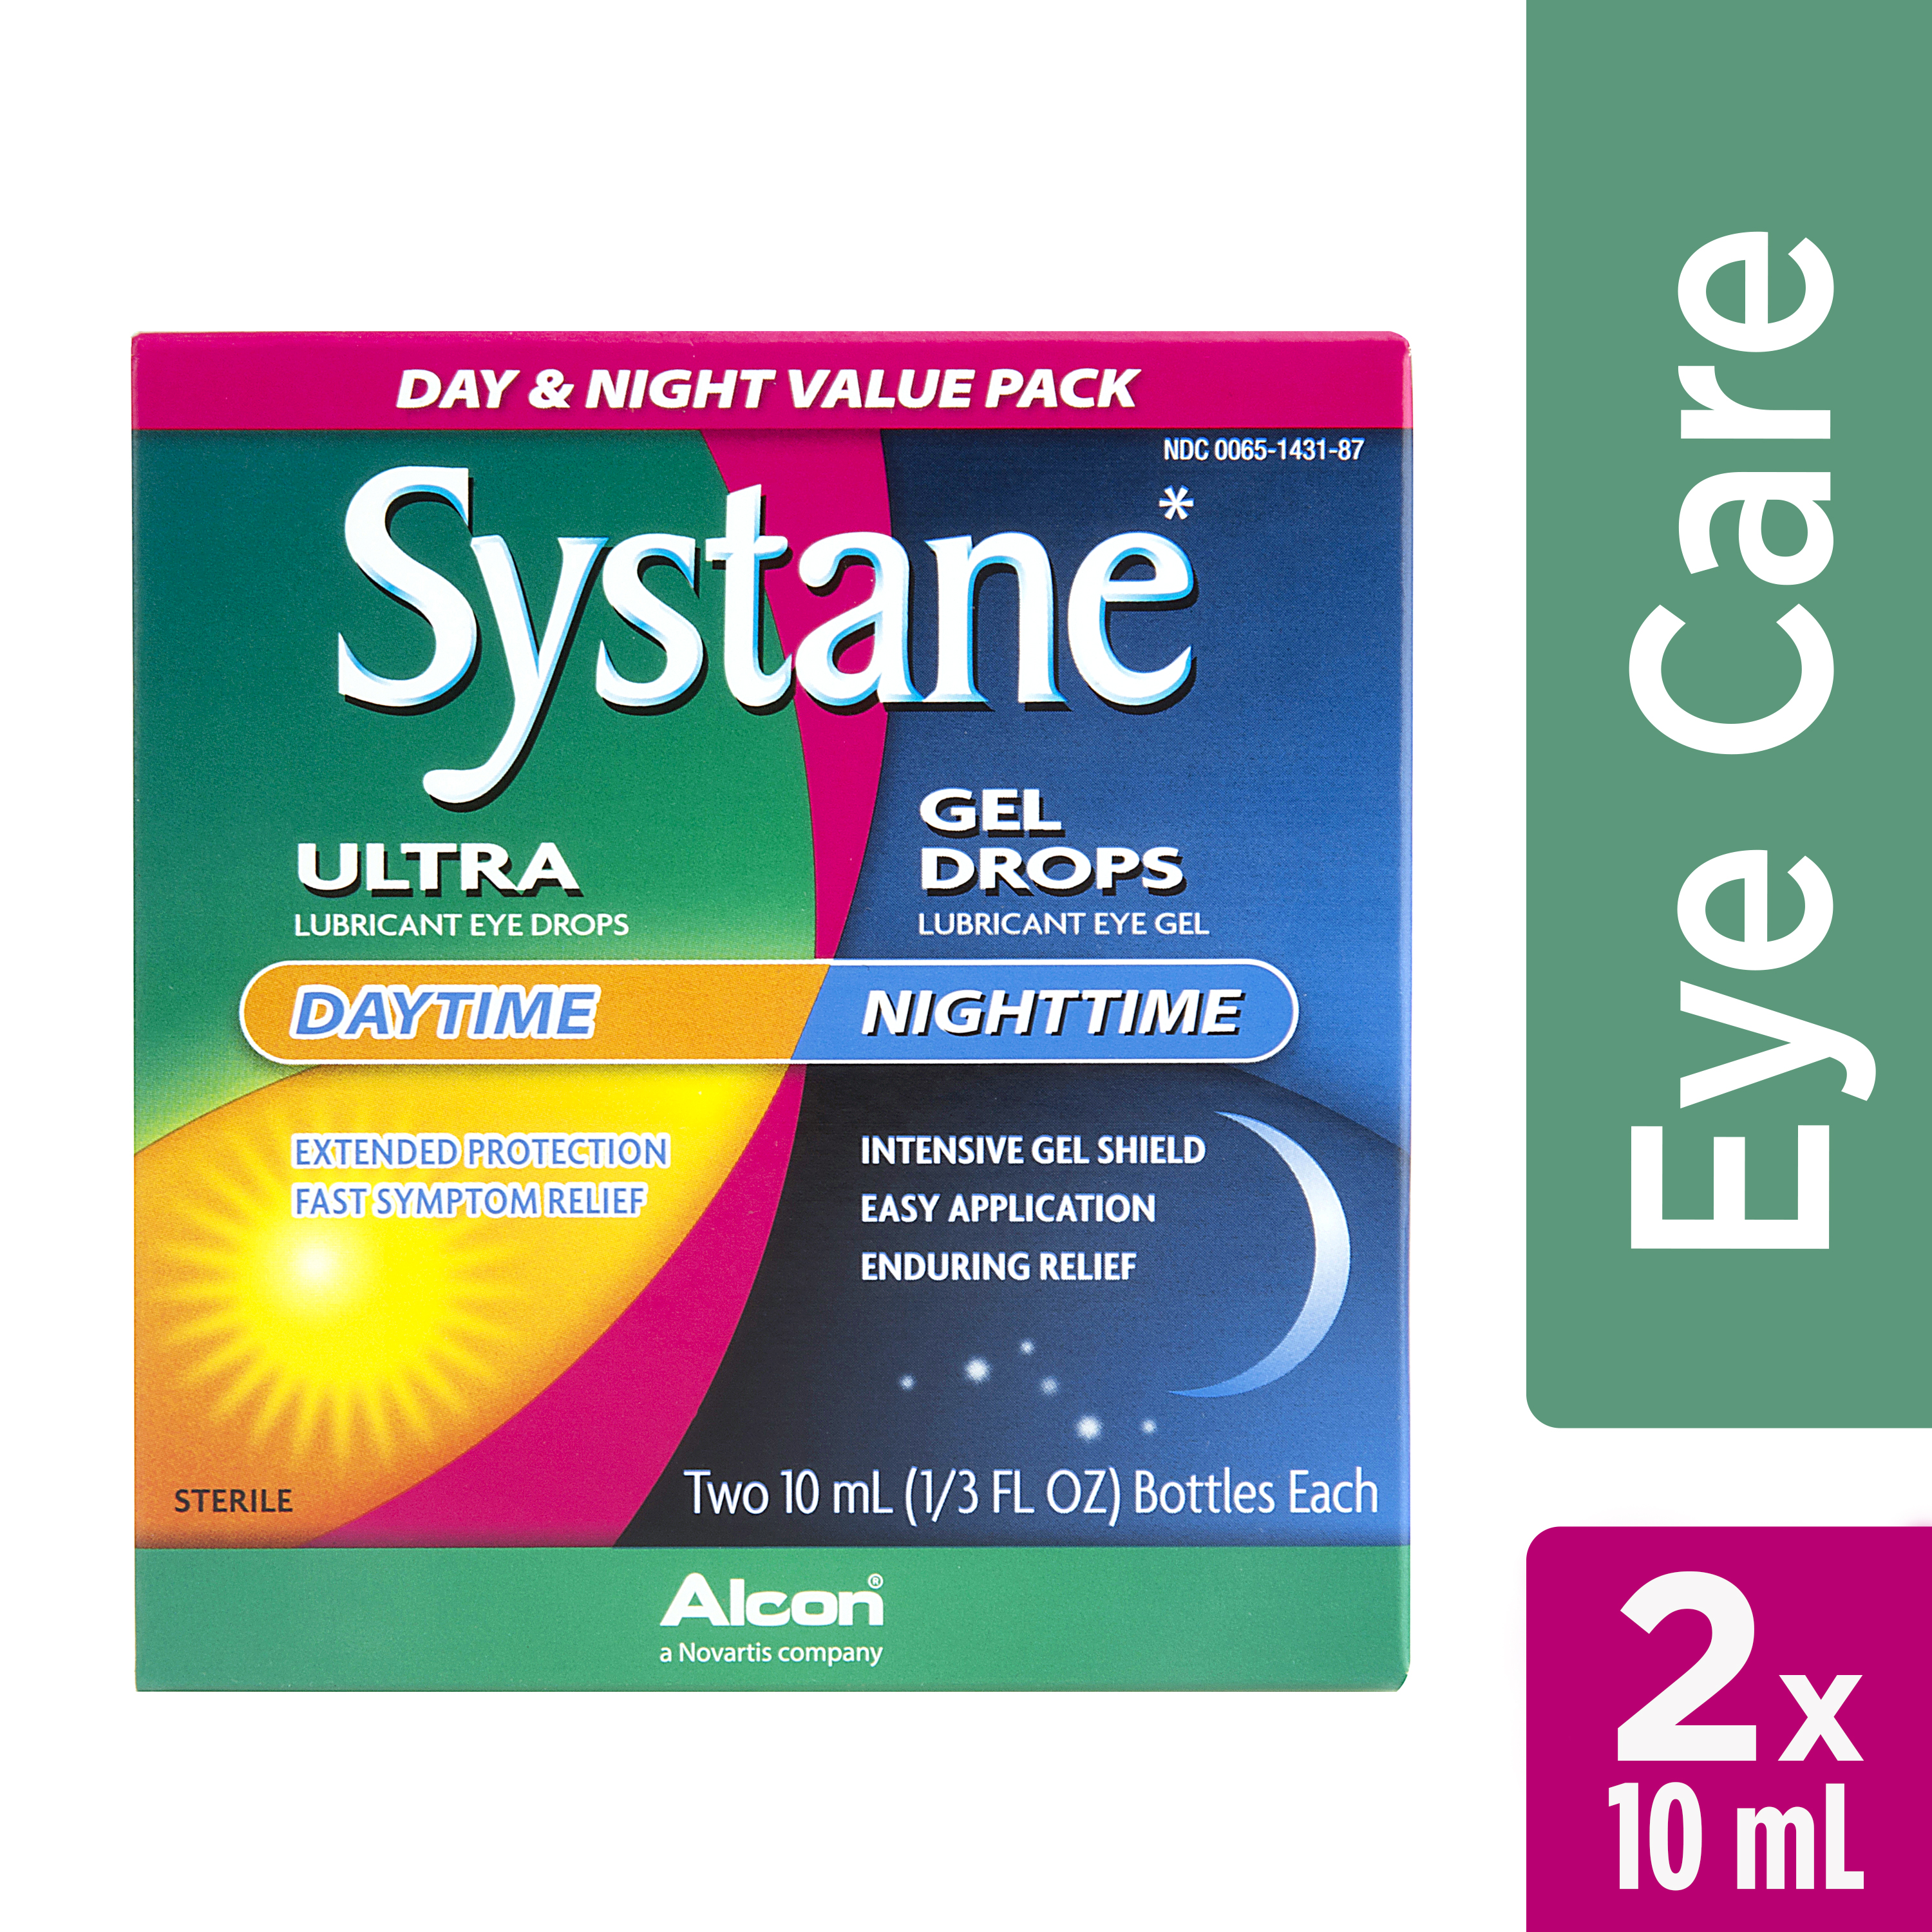 SYSTANE Day & Night ULTRA Lubricating Eye Drops and Nighttime Gel Drops for Dry Eyes Symptoms, 2 x 10mL TWIN